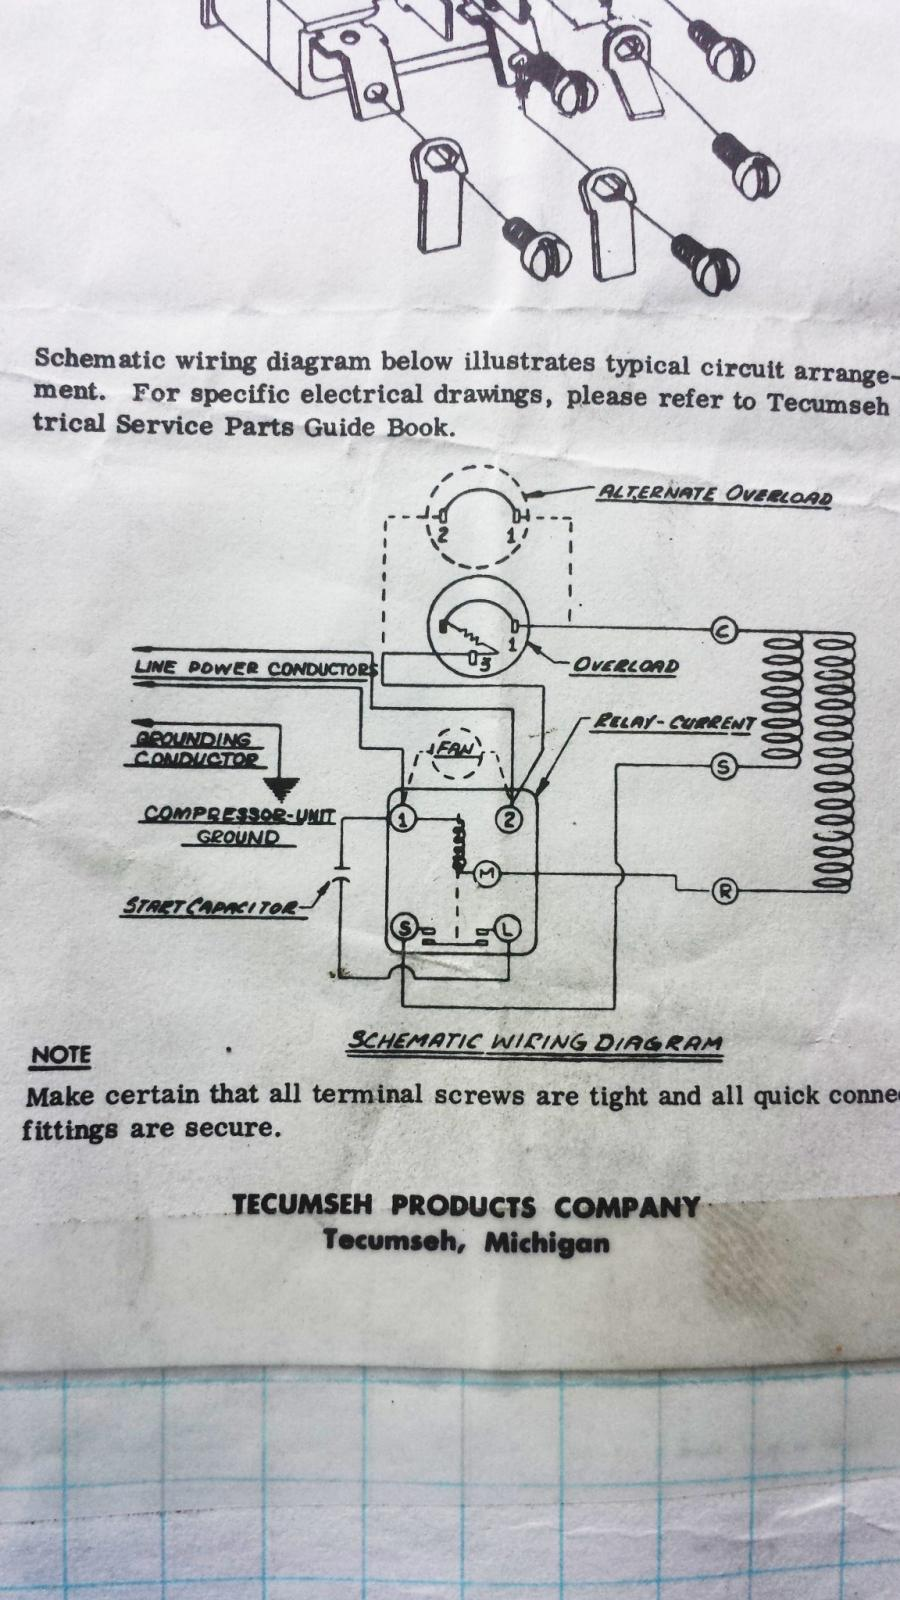 Ptc Issue True Wiring Diagrams Attached Images